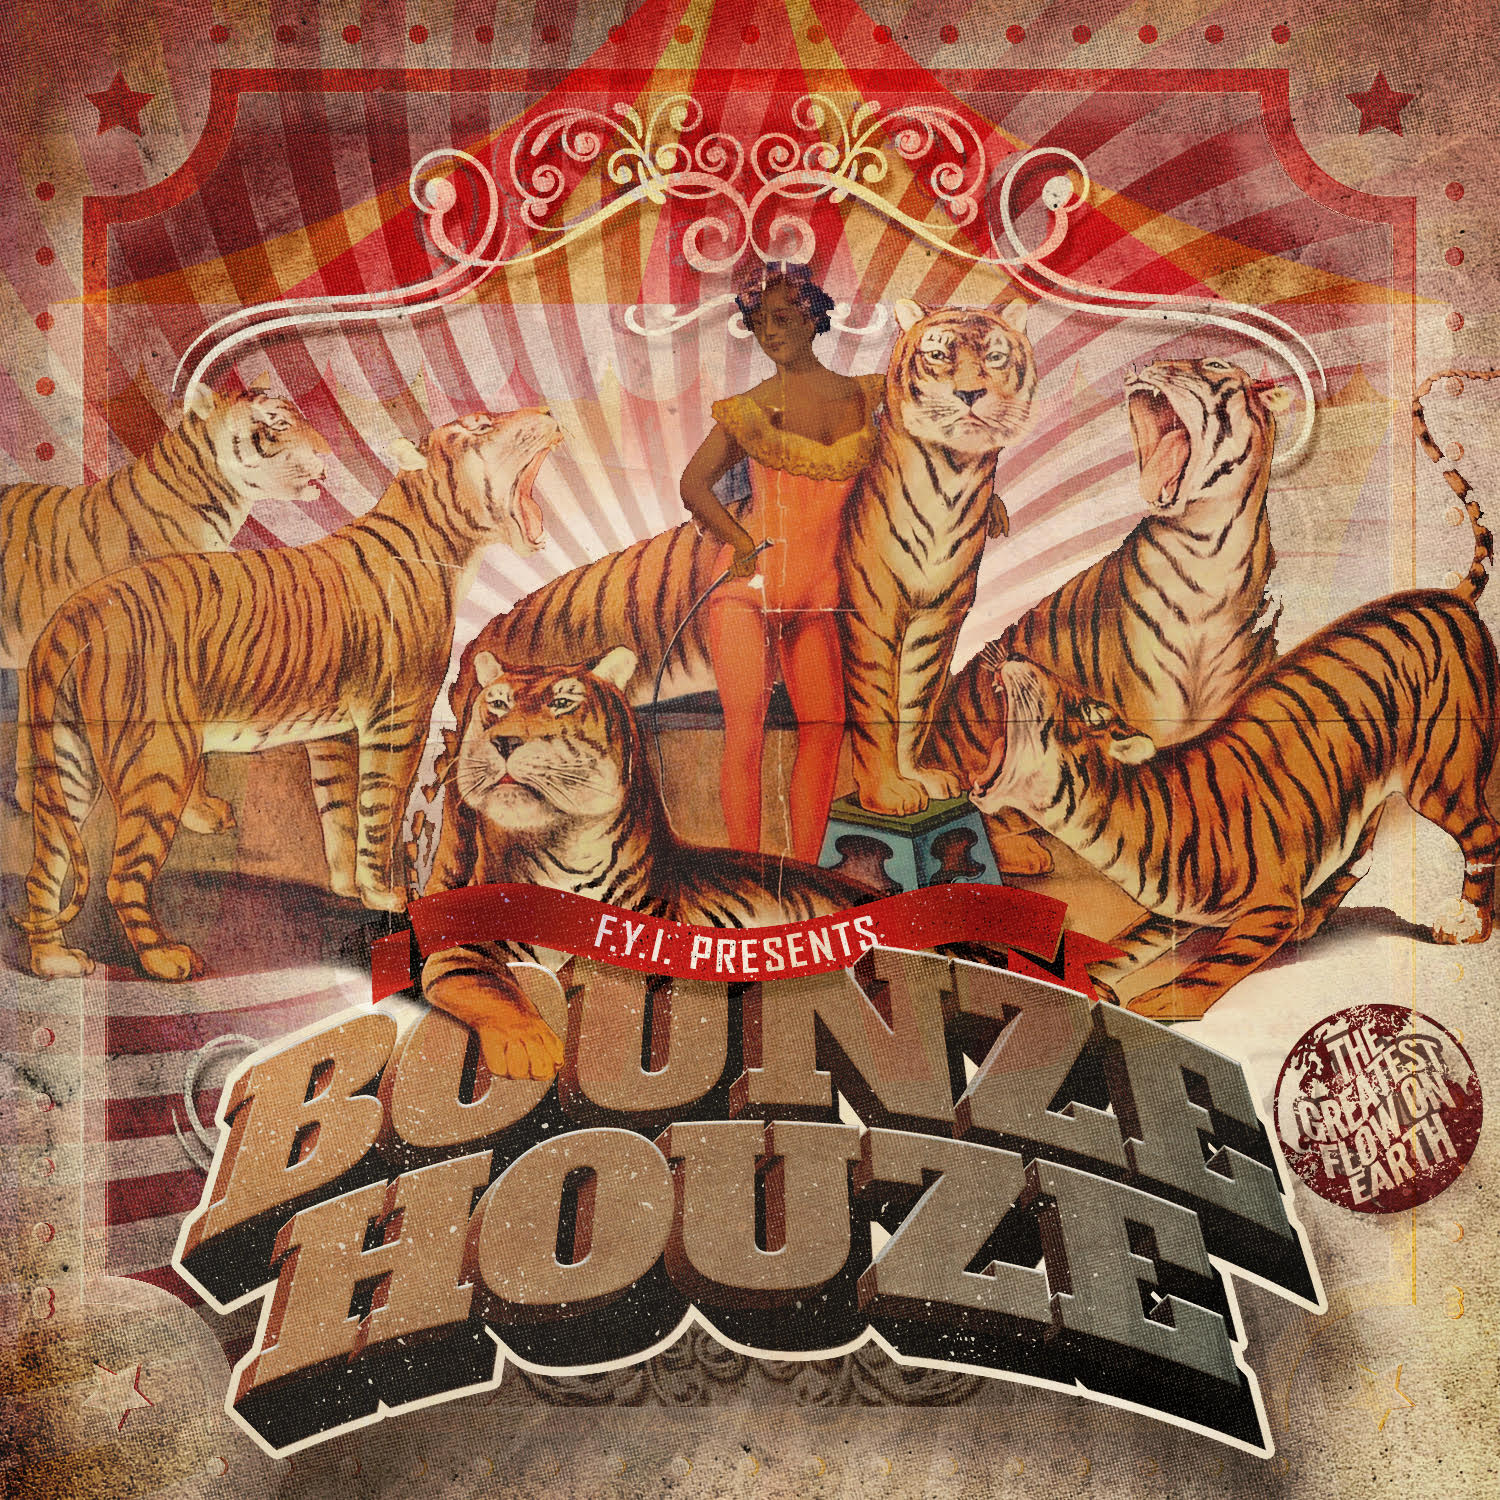 Bounze Houze Front Cover